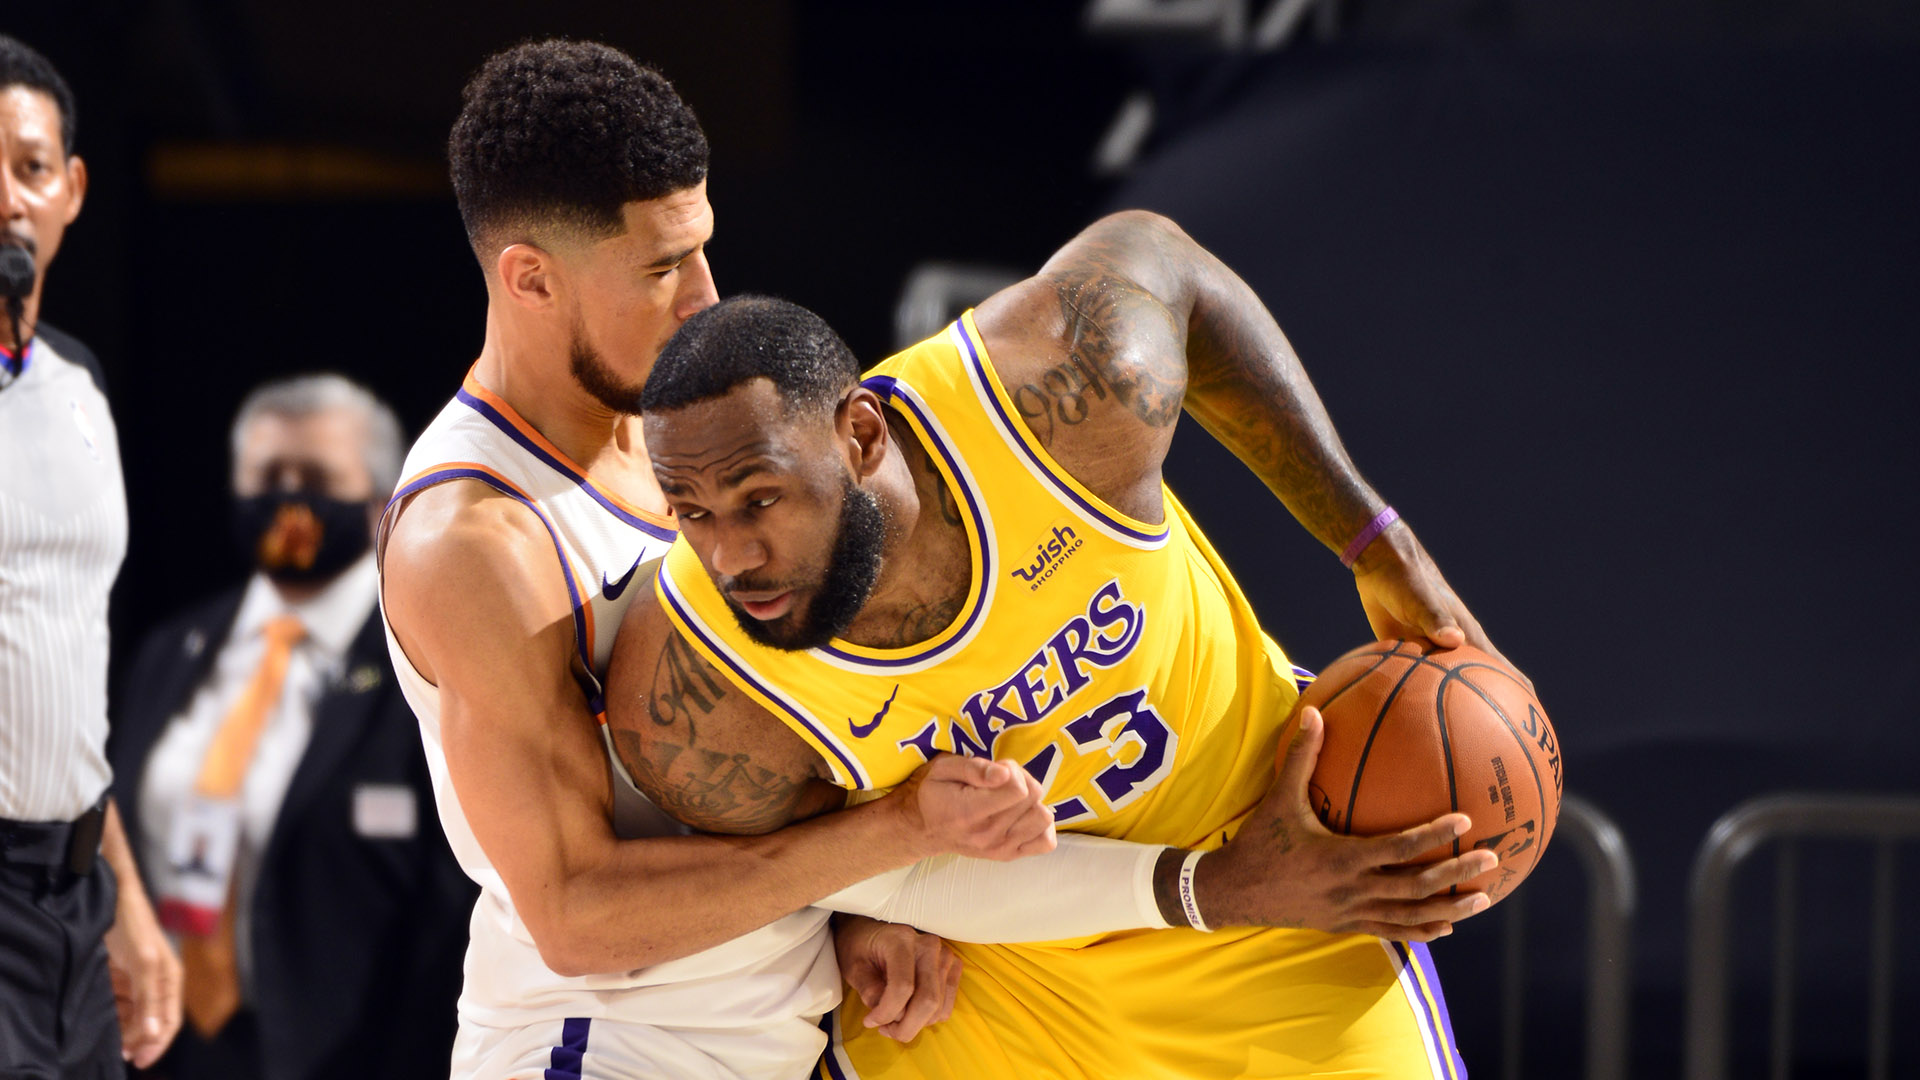 Numbers preview: Suns (2) vs. Lakers (7)